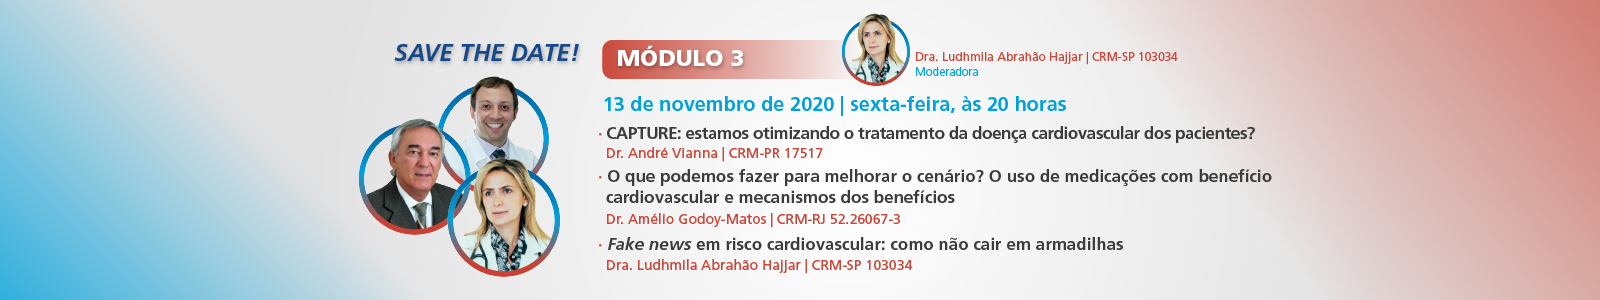 DC web-banners-Mód 3 save the date